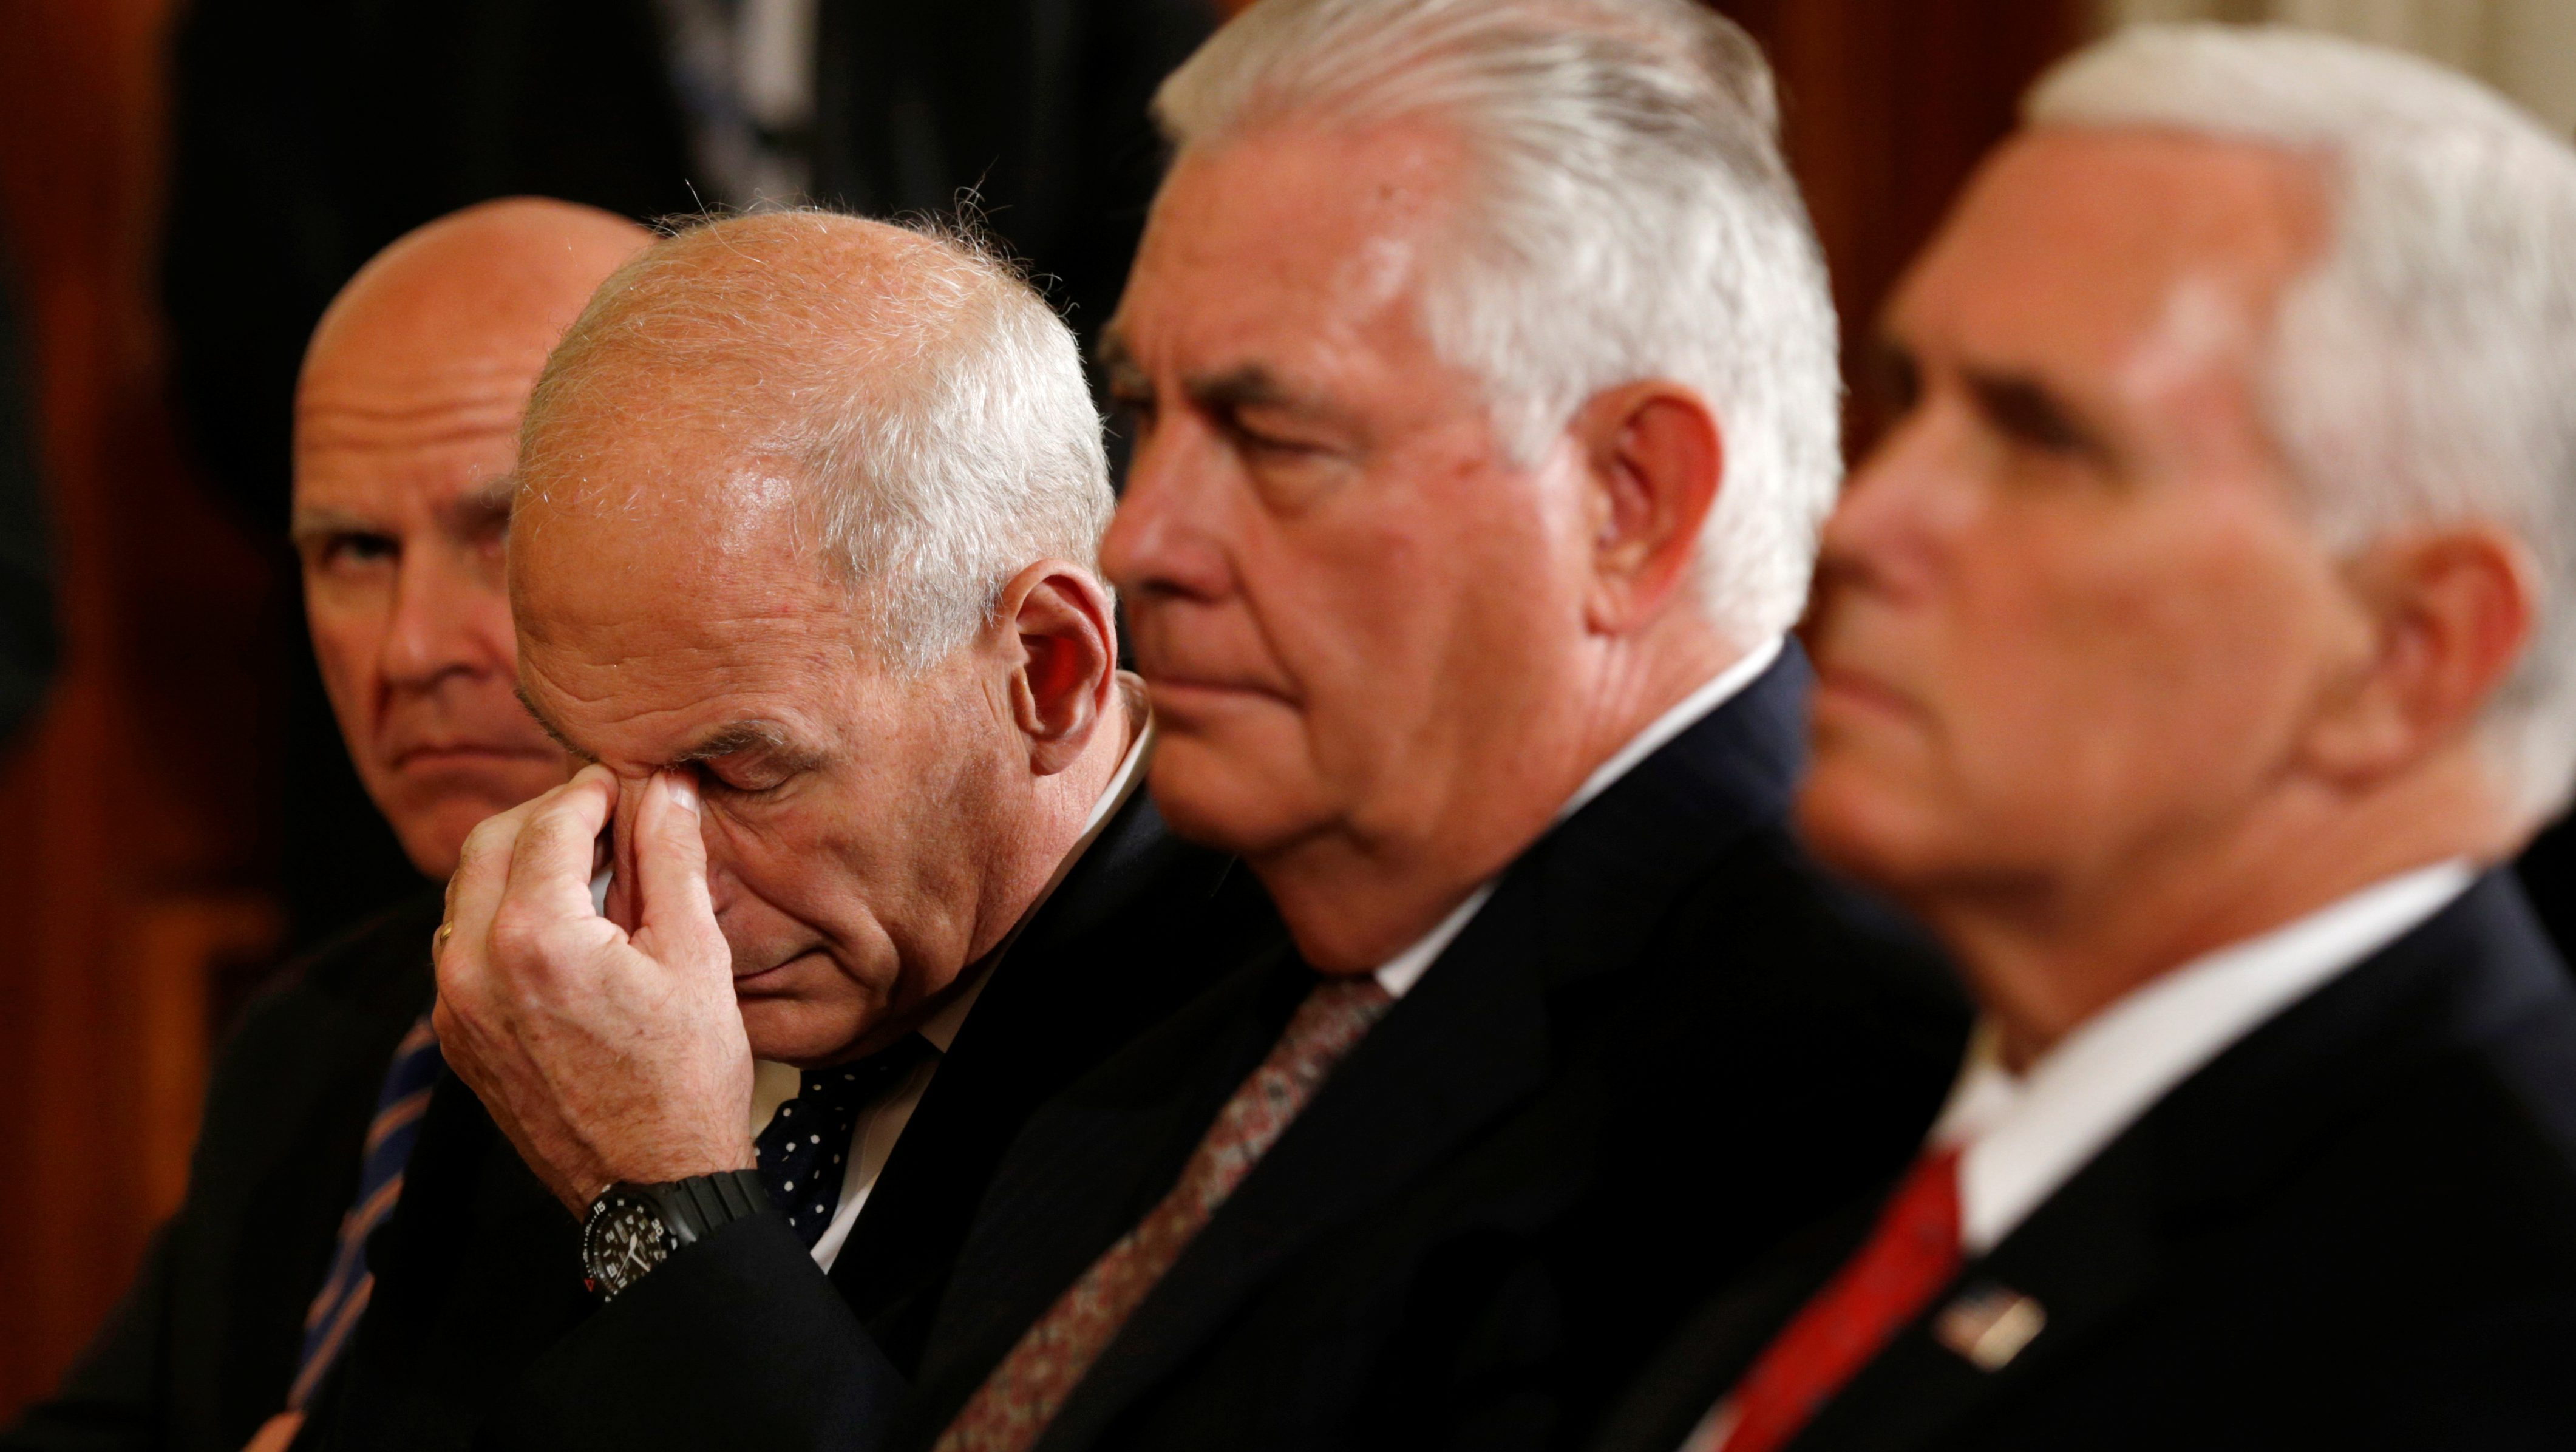 White House Chief of Staff John Kelly (2nd L) wipes his eyes while seated with National Security Adviser H.R. McMaster (L) U.S. Secretary of State Rex Tillerson (2nd R) and Vice President Mike Pence as U.S. President Donald Trump holds a joint press conference with Finnish President Sauli Niinisto at the White House in Washington, U.S., August 28, 2017.